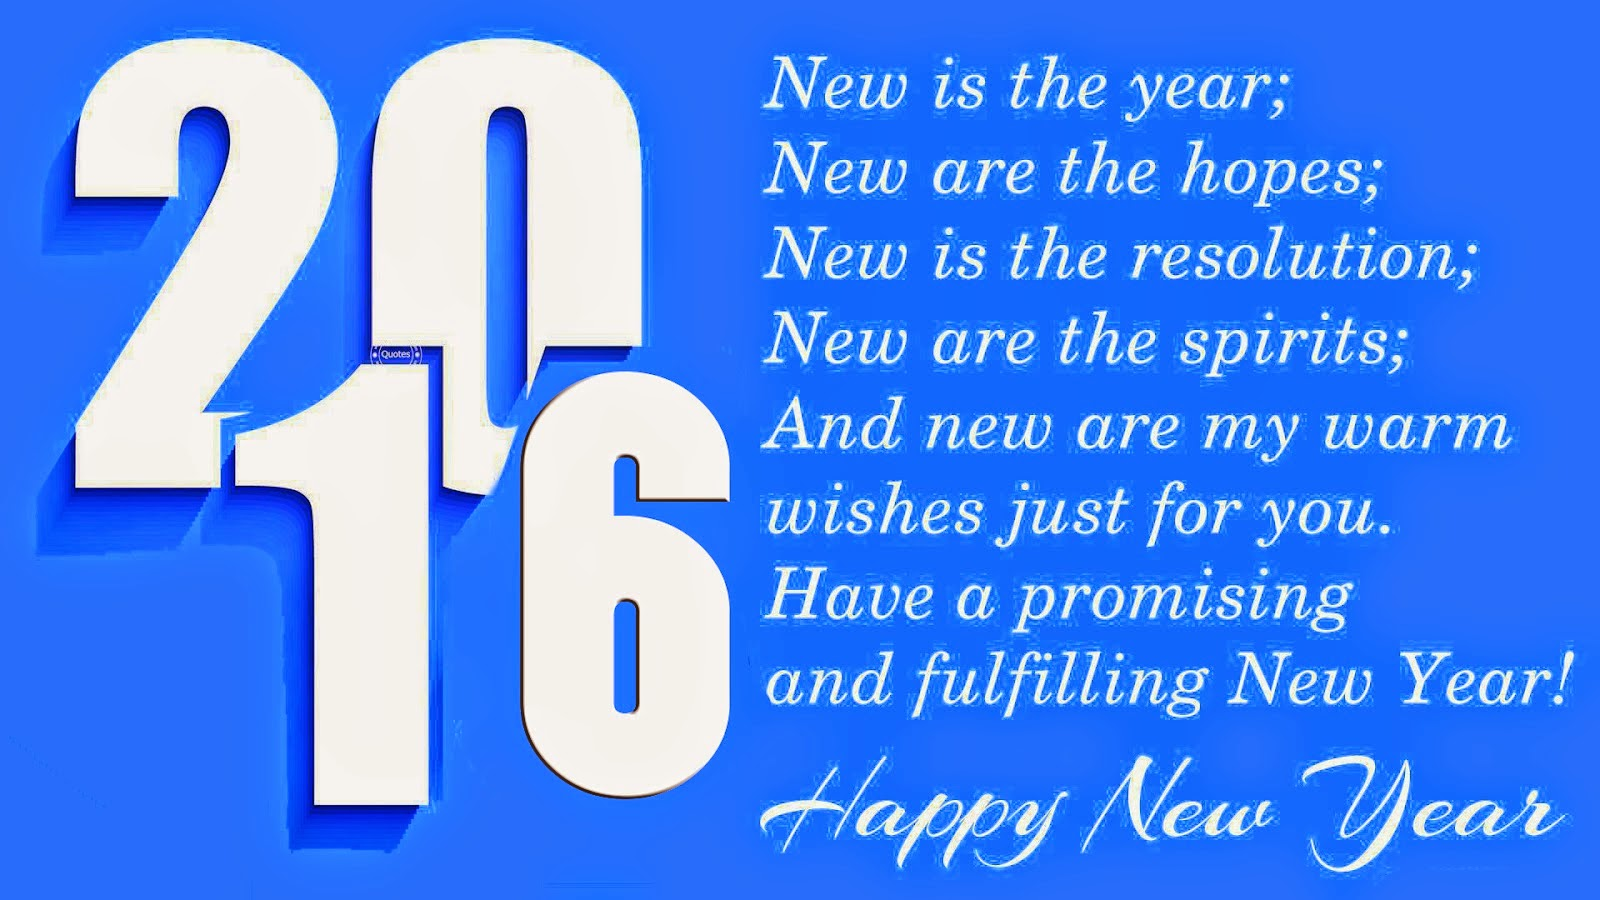 {2016*} Happy New Year Quotes in English  New Year Quotes 2016